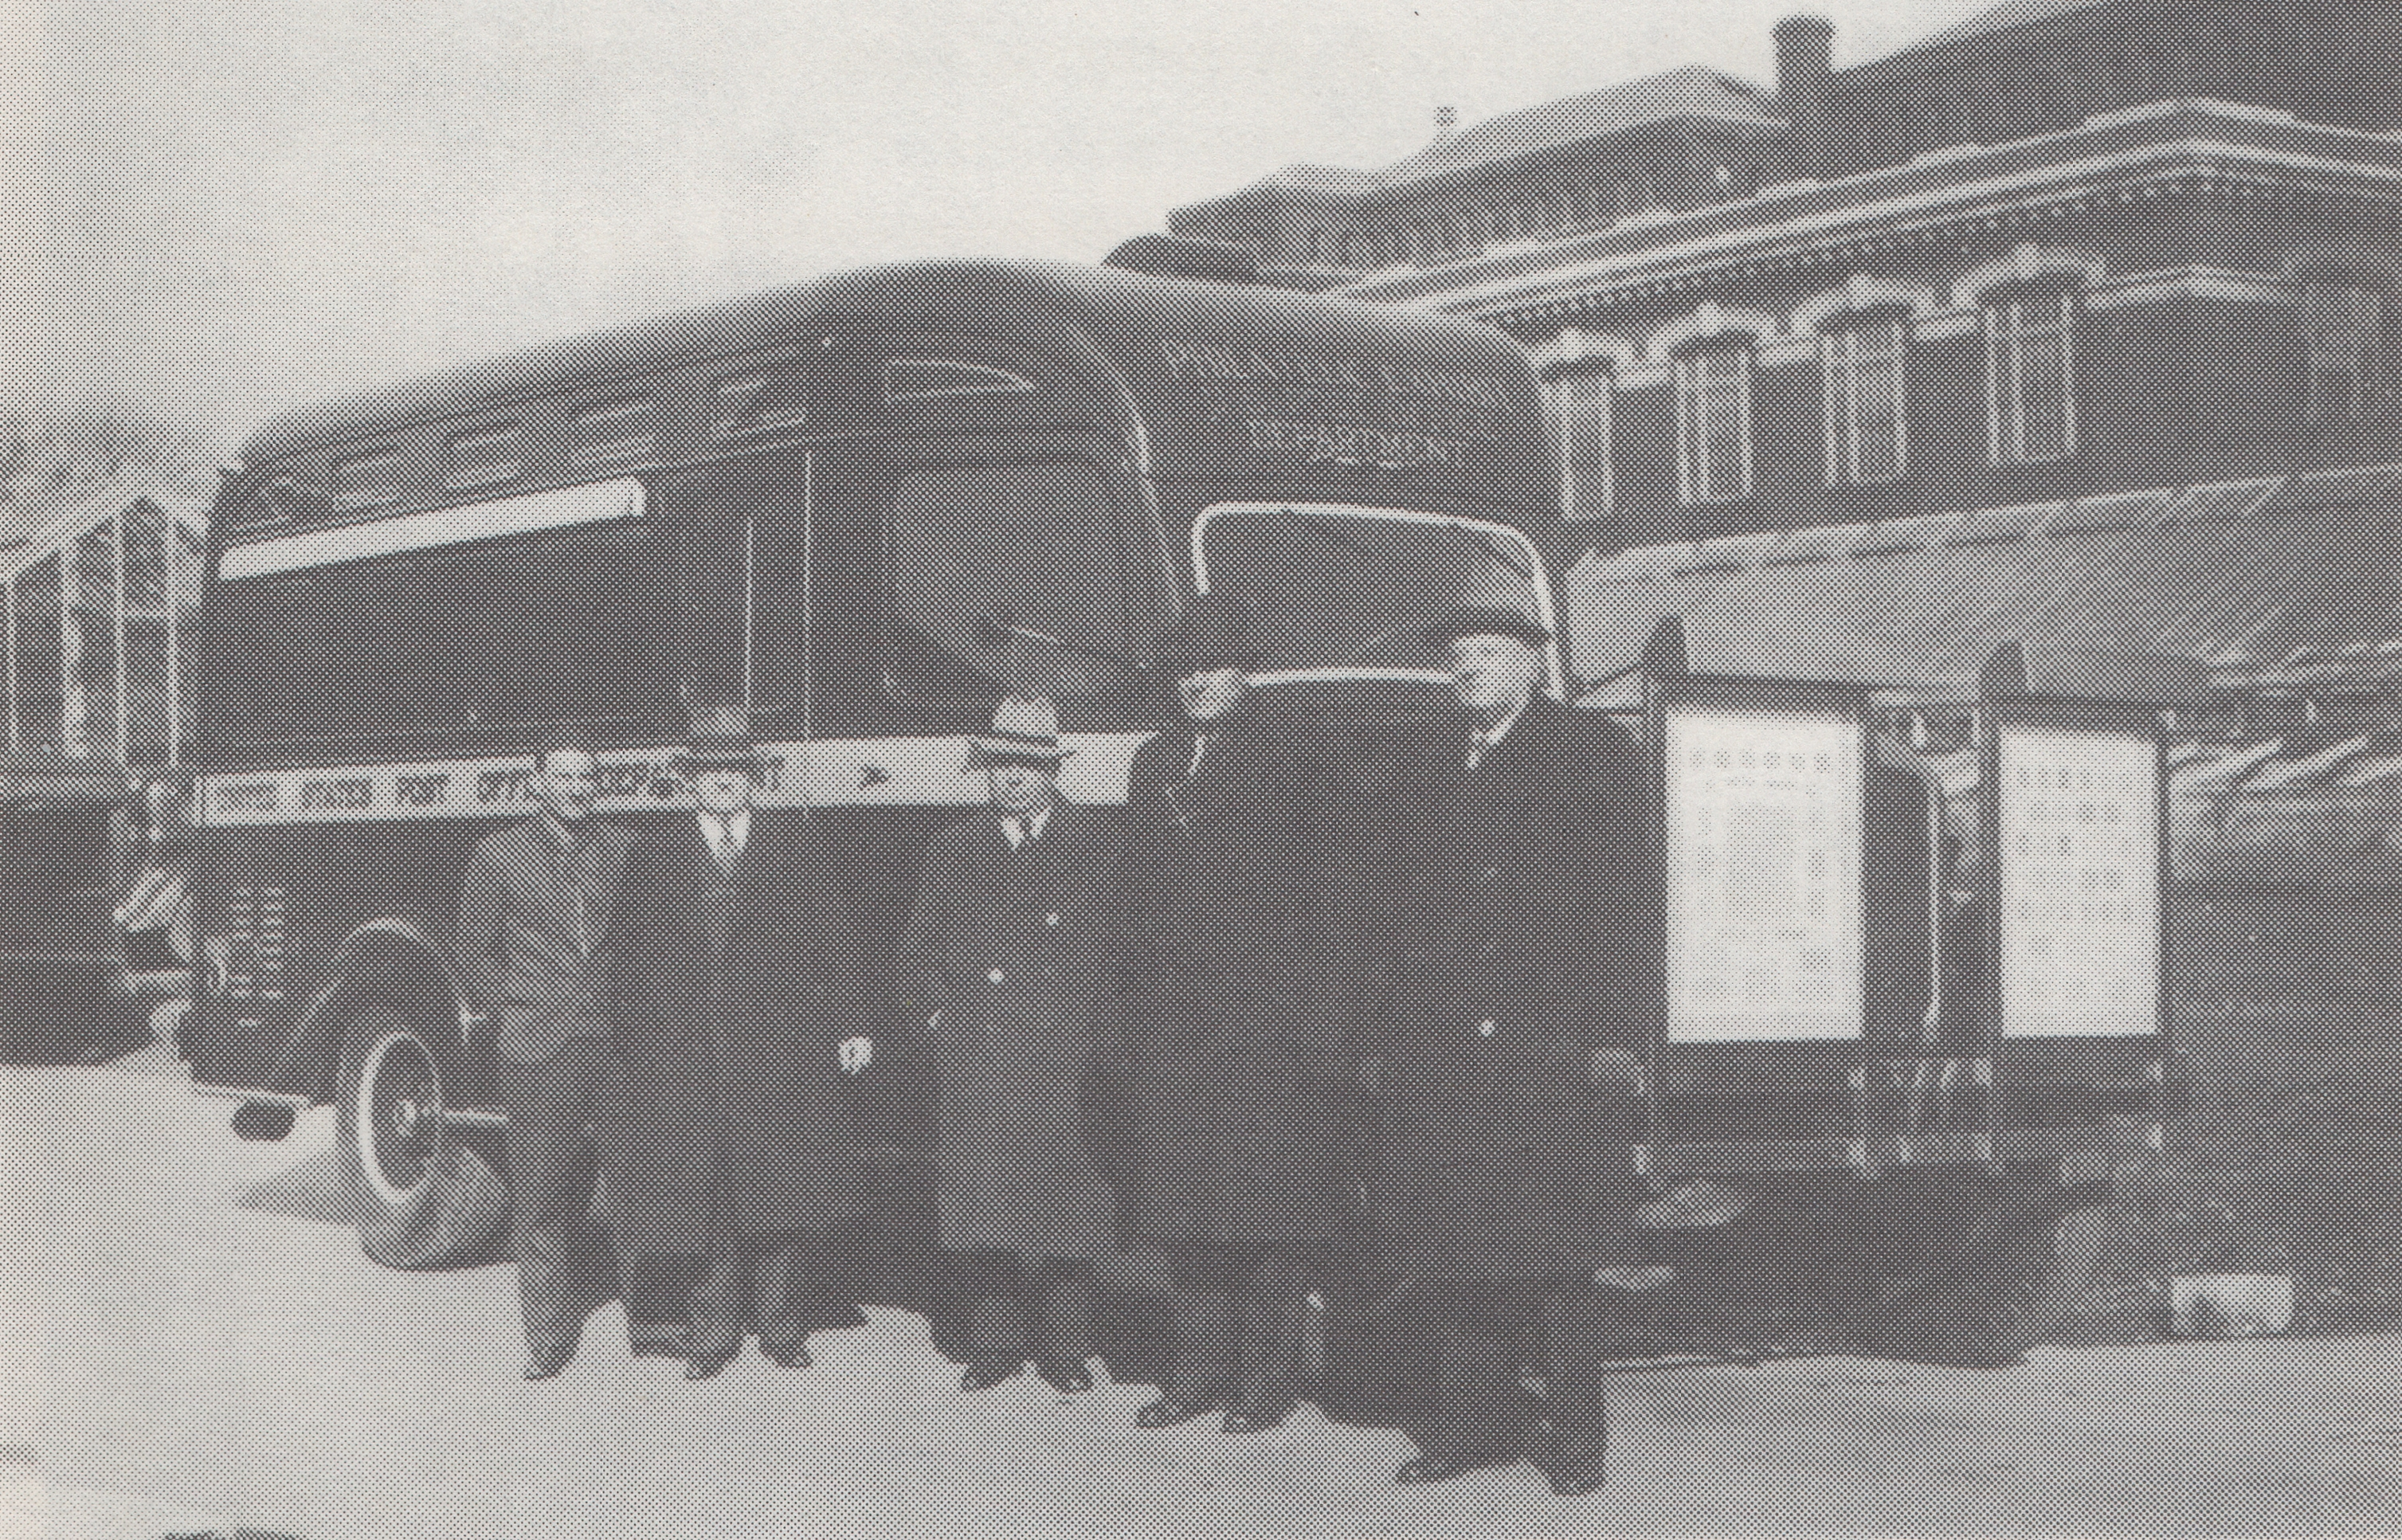 Bureau of Engraving and Printing officials pose with the Philatelic Truck outside of the BEP in Washington, D.C., circa April 1939. Note the two display frames mounted to the front bumper.